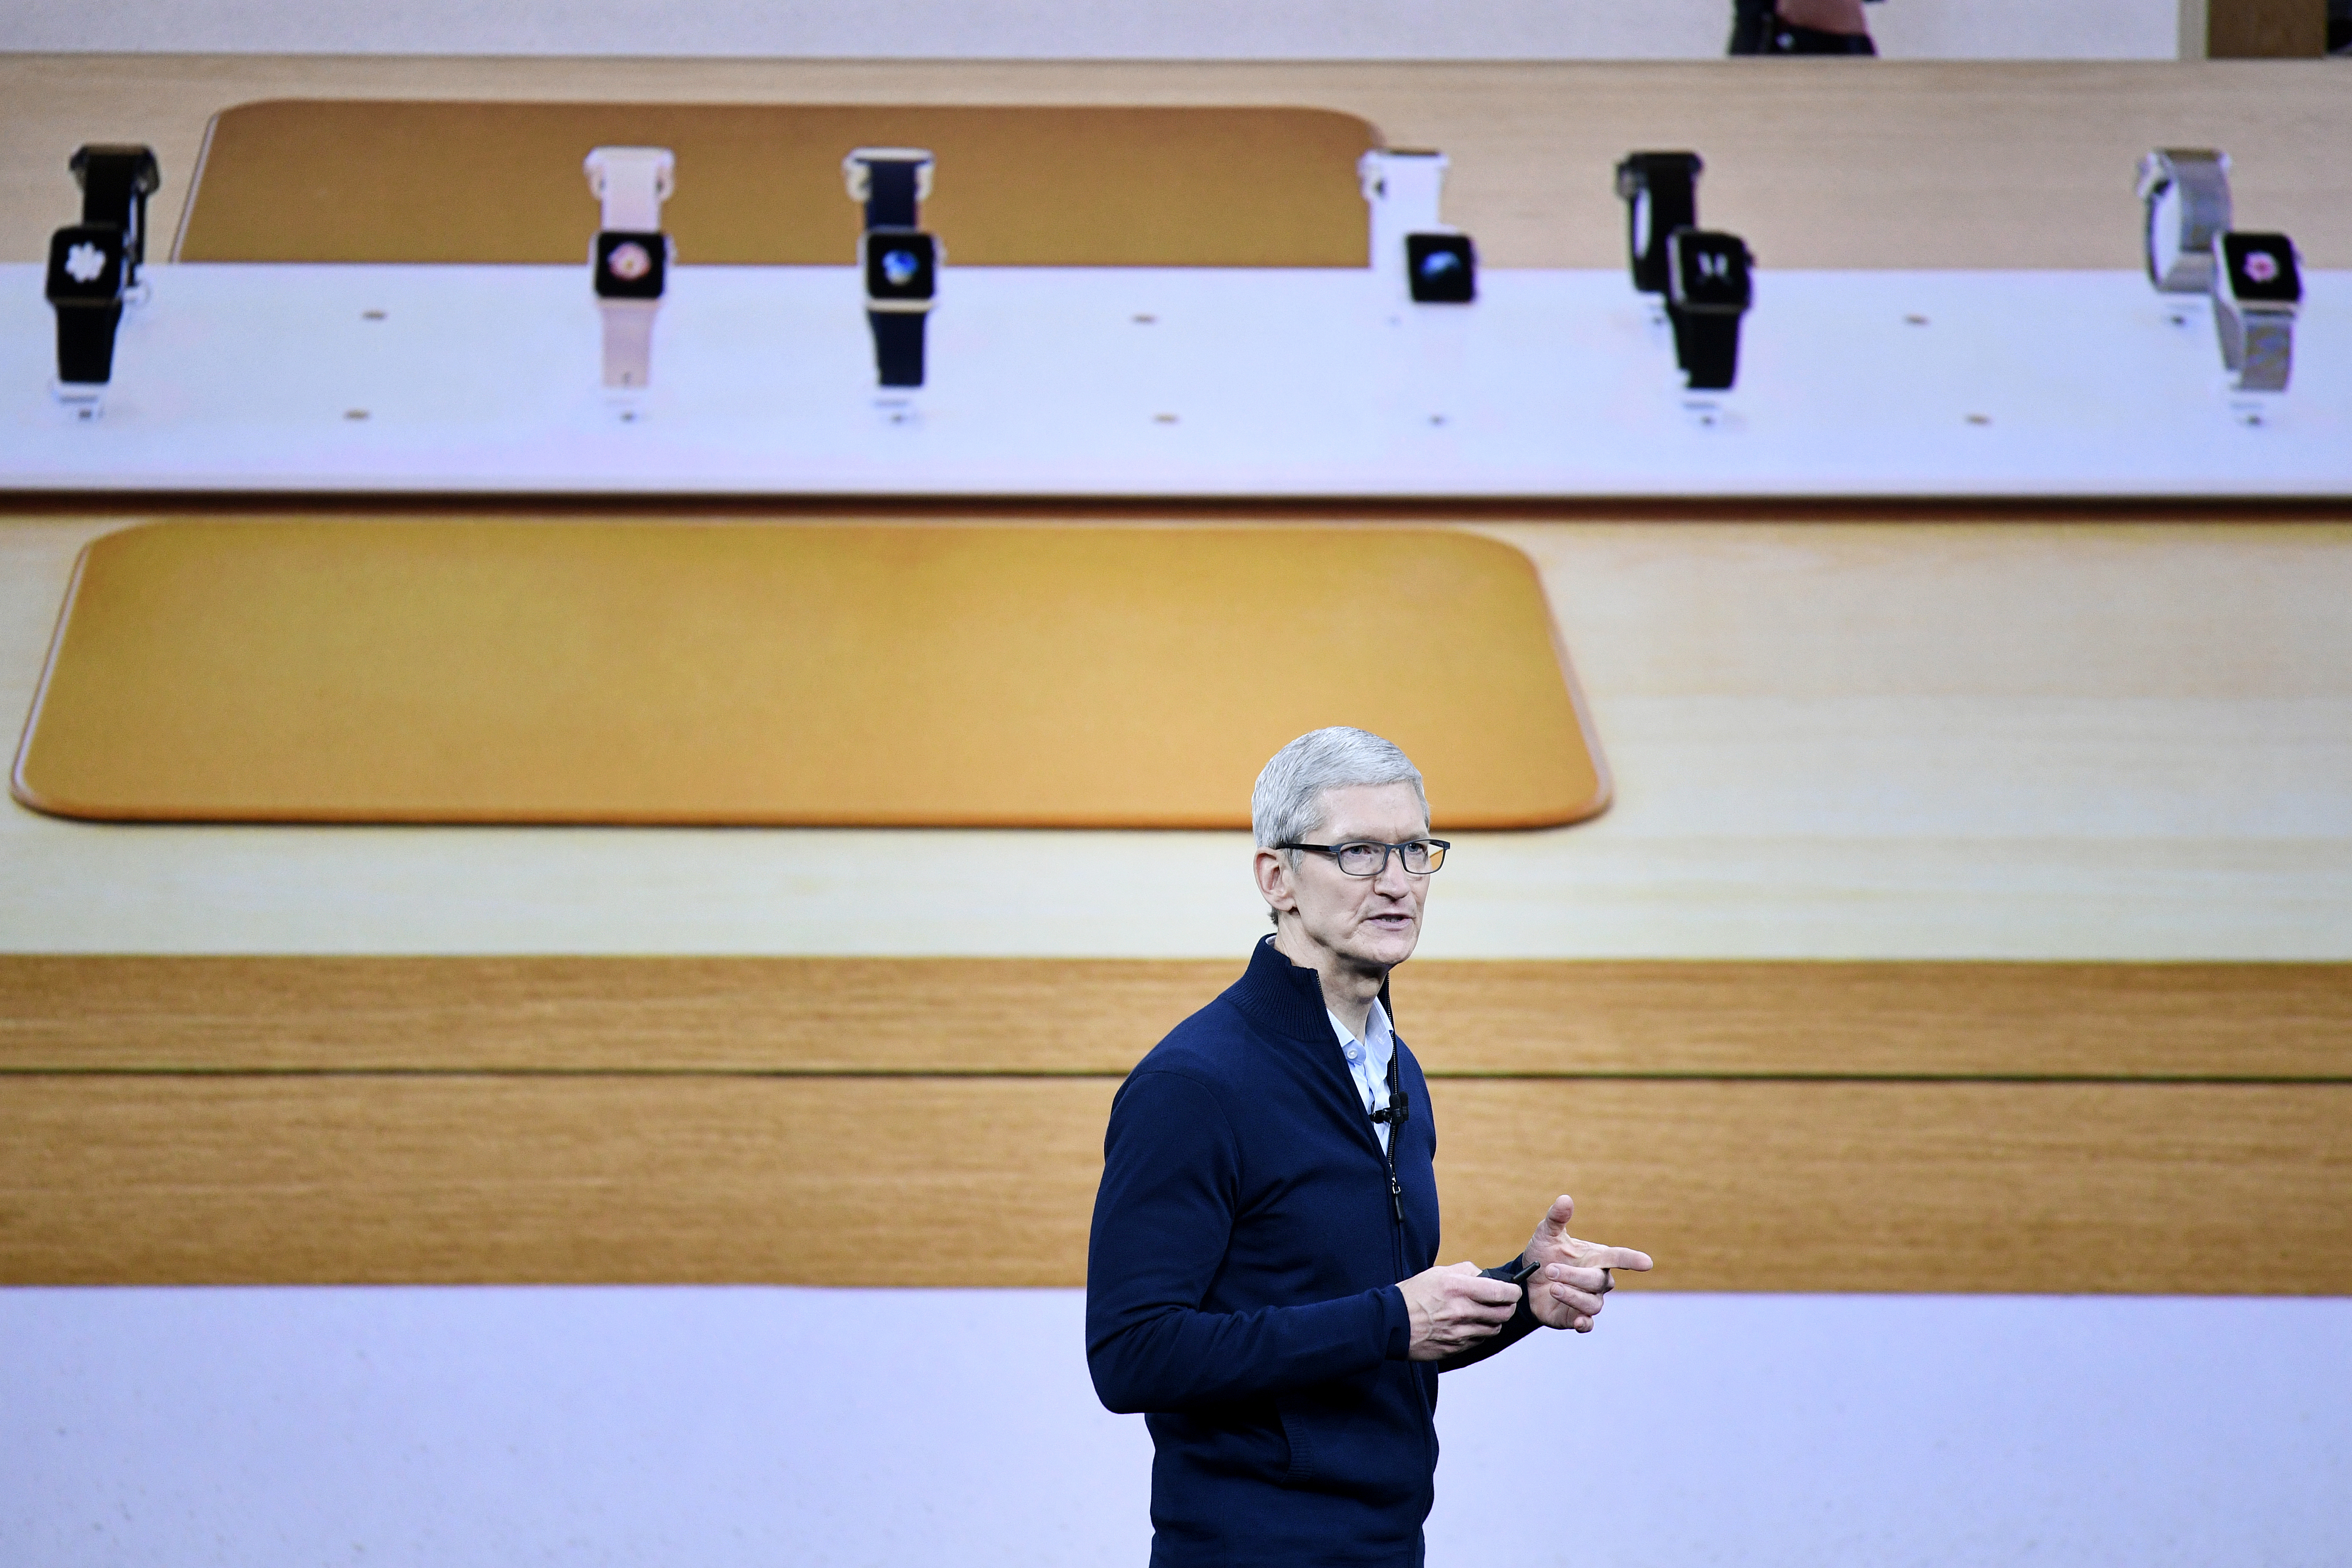 Tim Cook, chief executive officer of Apple Inc., speaks during an event at the Steve Jobs Theater in Cupertino, California on Sept. 12, 2017.